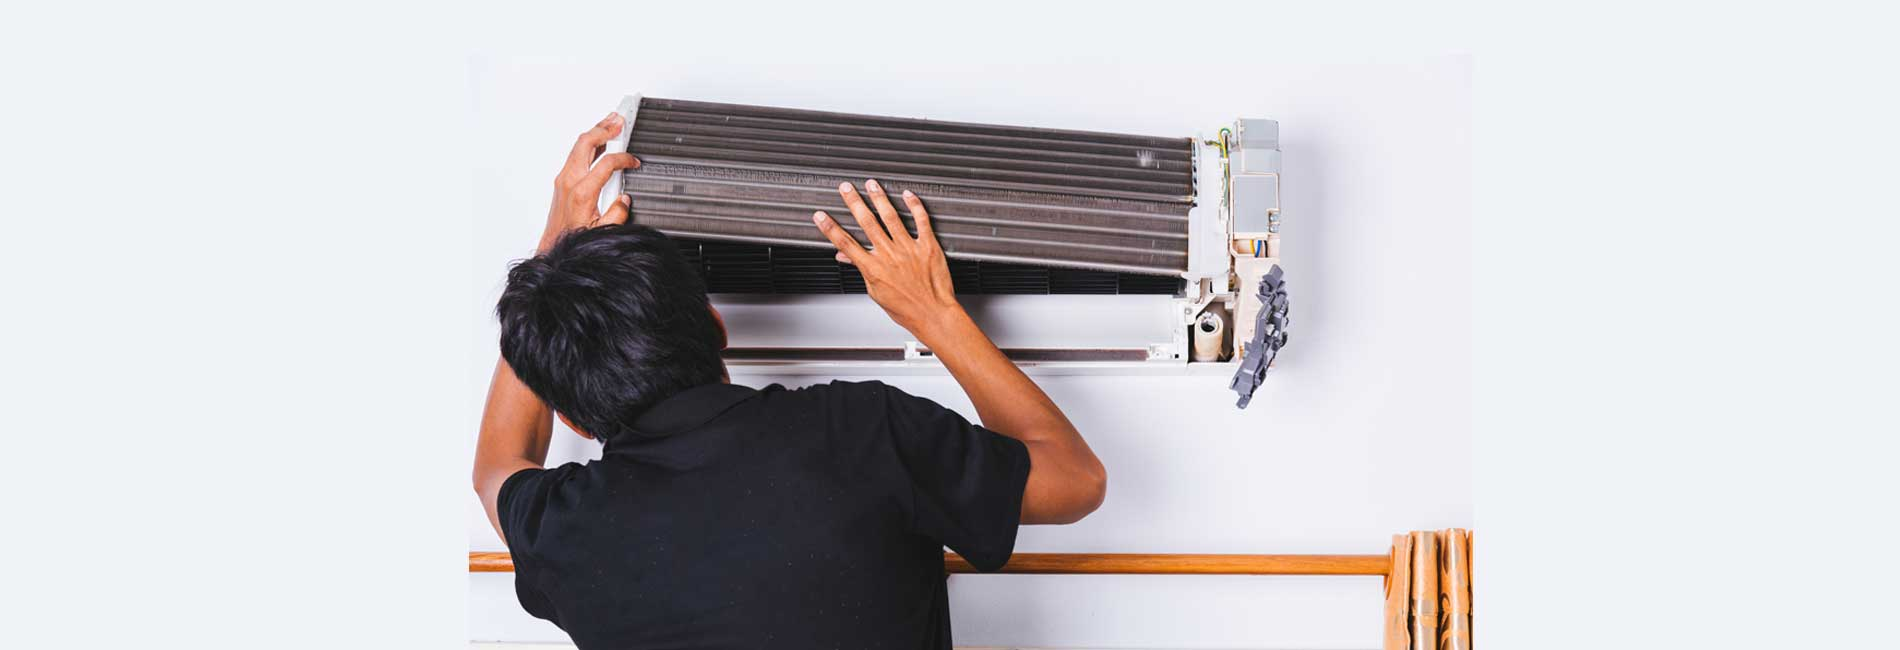 Bluestar AC Uninstallation and Installation in Sholavaram